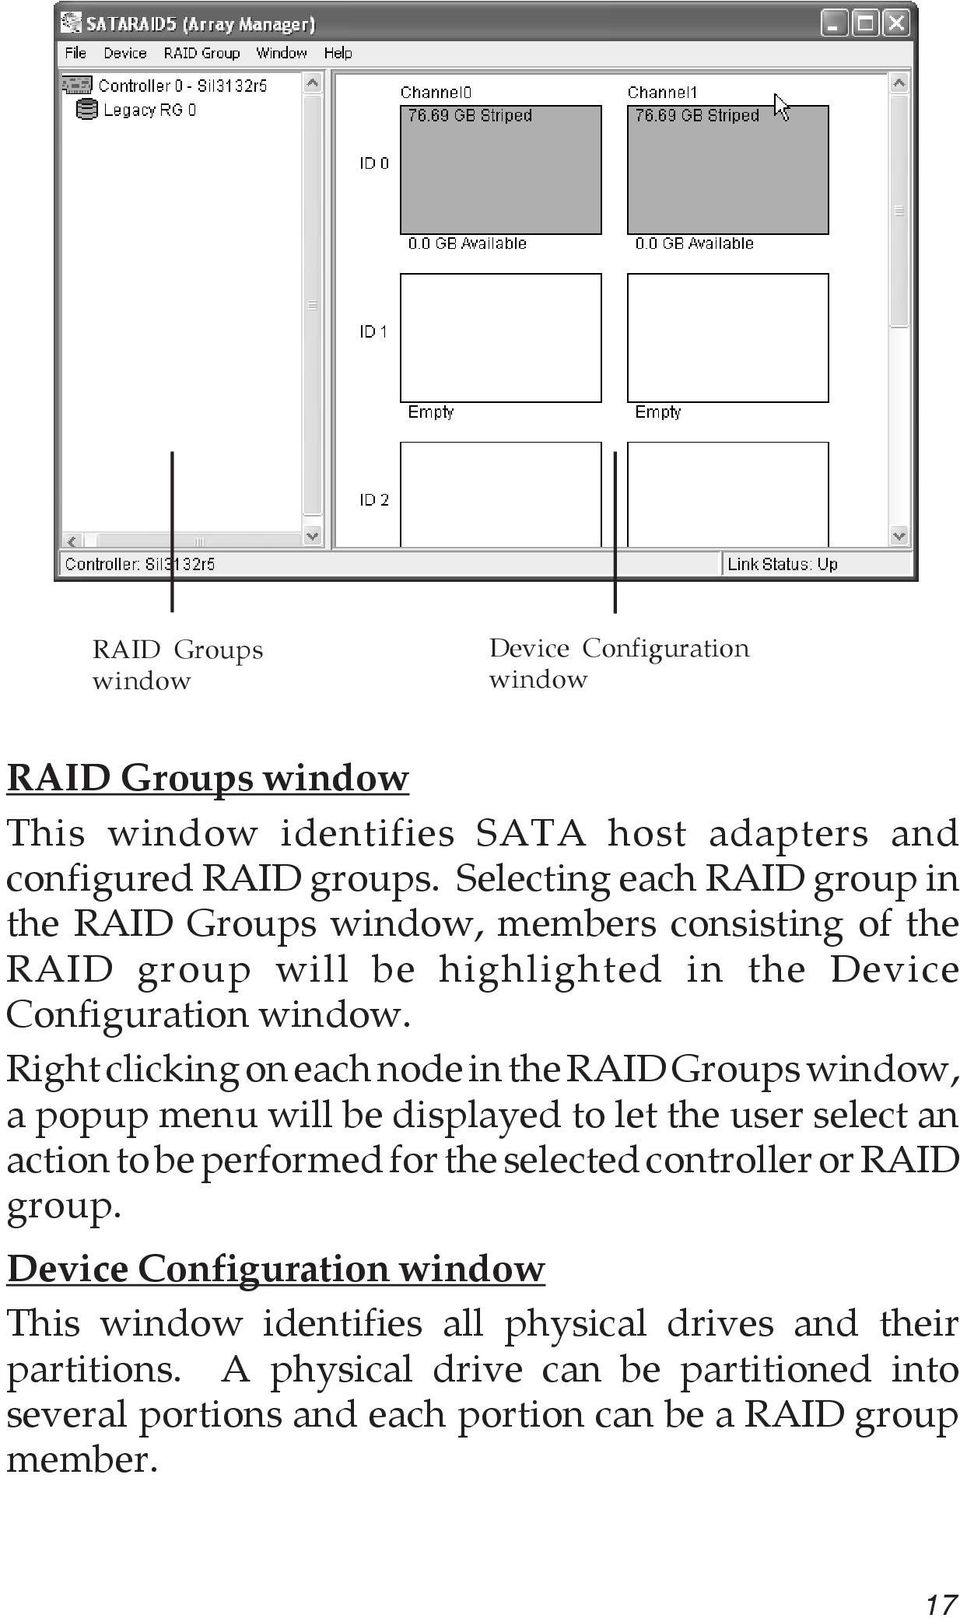 Right clicking on each node in the RAID Groups window, a popup menu will be displayed to let the user select an action to be performed for the selected controller